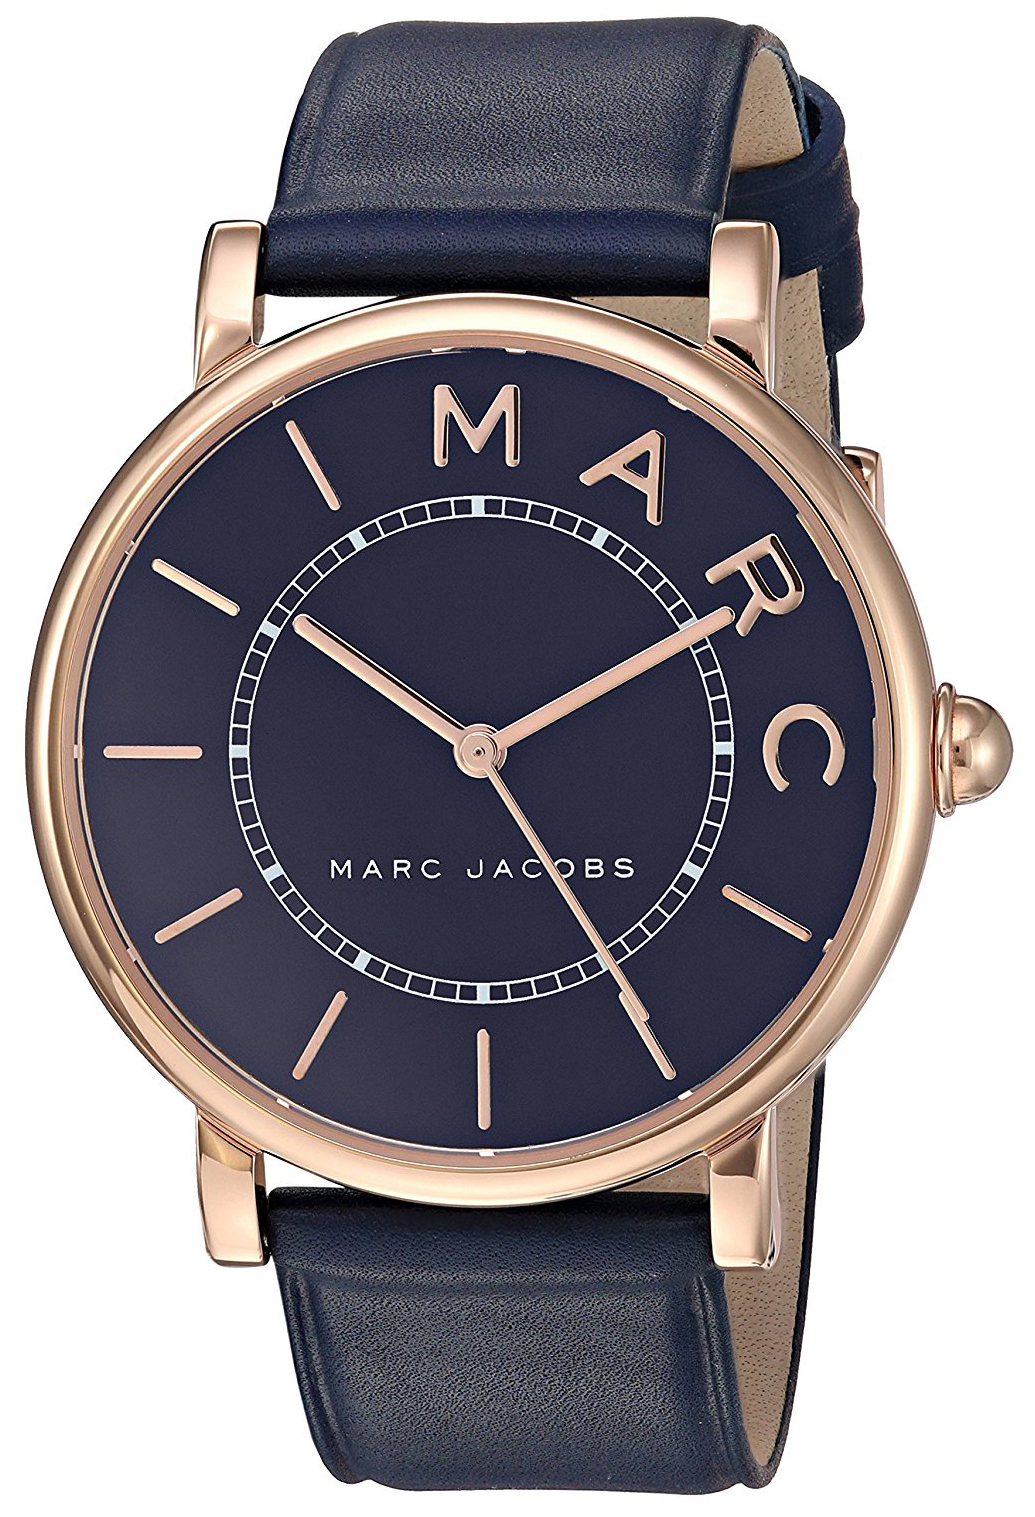 Marc by Marc Jacobs 99999 Dameklokke MJ1534 Blå/Lær Ø36 mm - Marc by Marc Jacobs